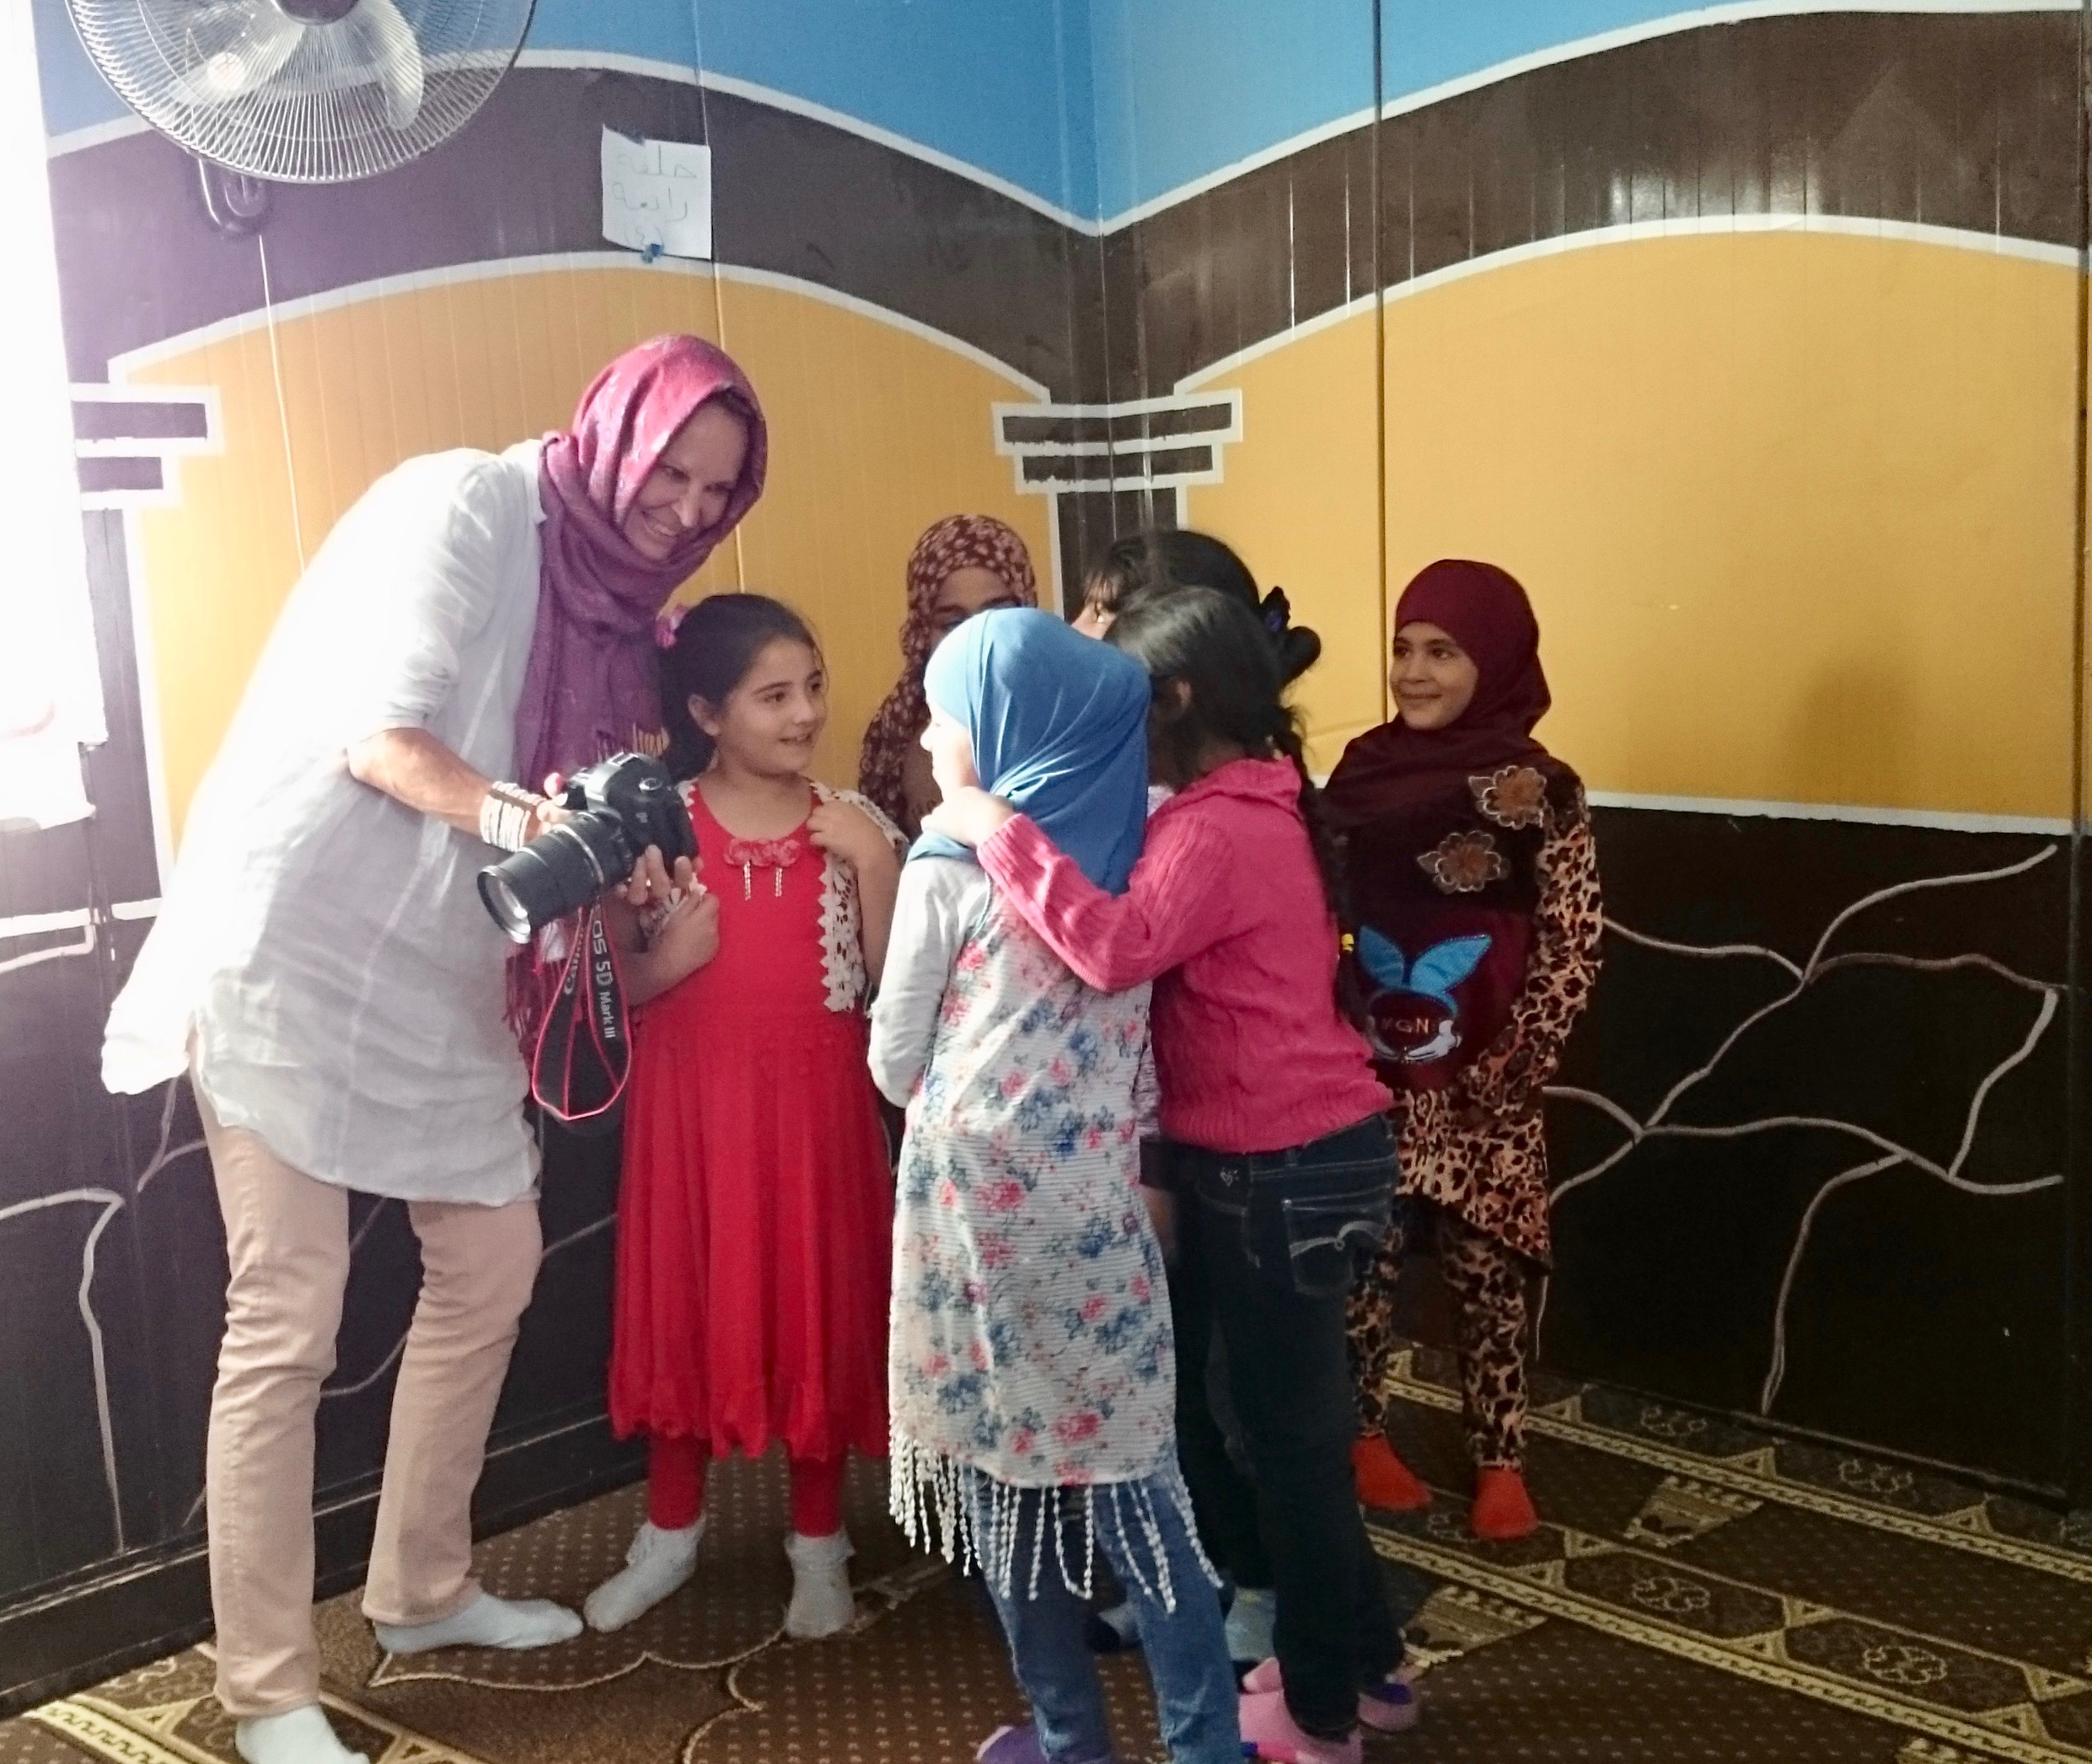 Sharing photos with young girls in the mosque in Village 6